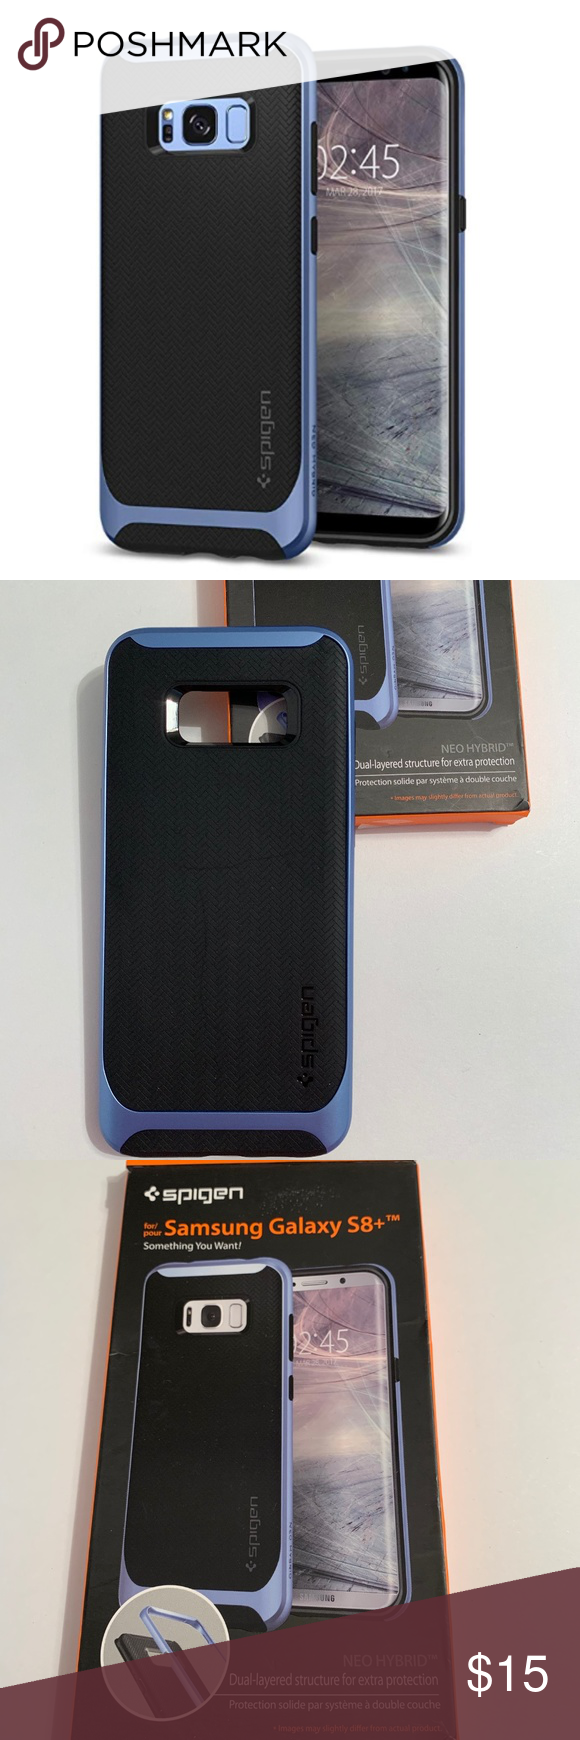 finest selection 73a12 851f8 Spigen Hybrid Samsung Galaxy S8 Plus Case S 8 + 8+ Sells for 15.99 ...